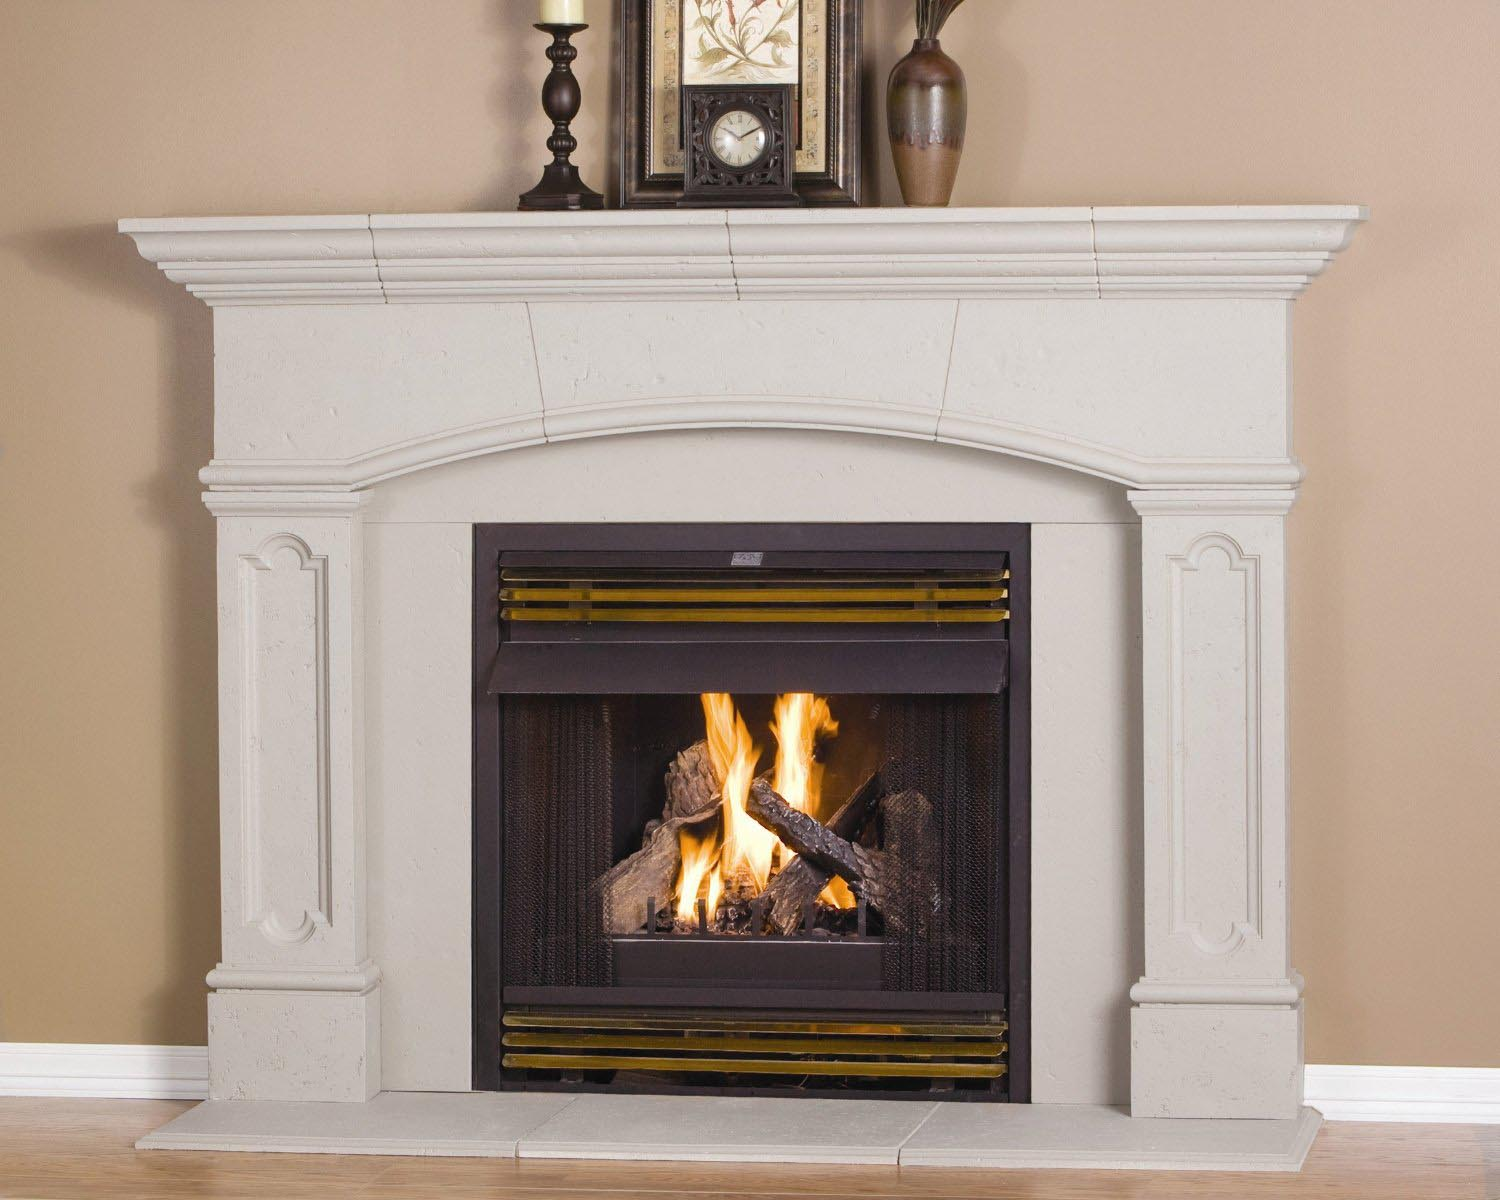 Fireplace mantel surrounds ideas fireplace designs - Fireplace mantel designs in simple and sophisticated style ...